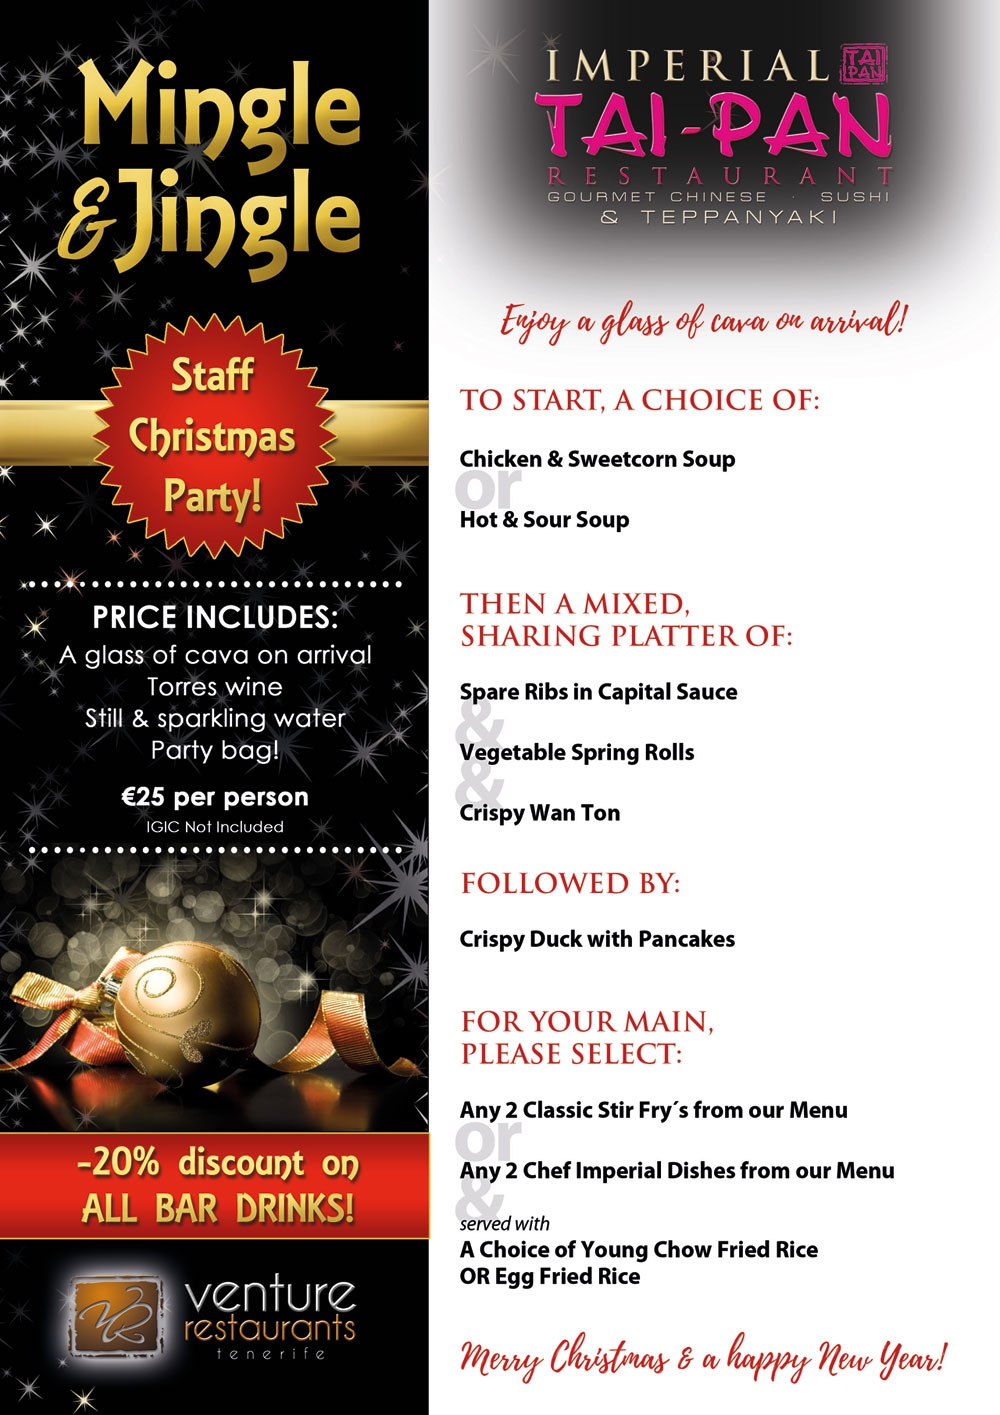 Book Your Christmas Party at Imperial Tai-Pan Restaurant